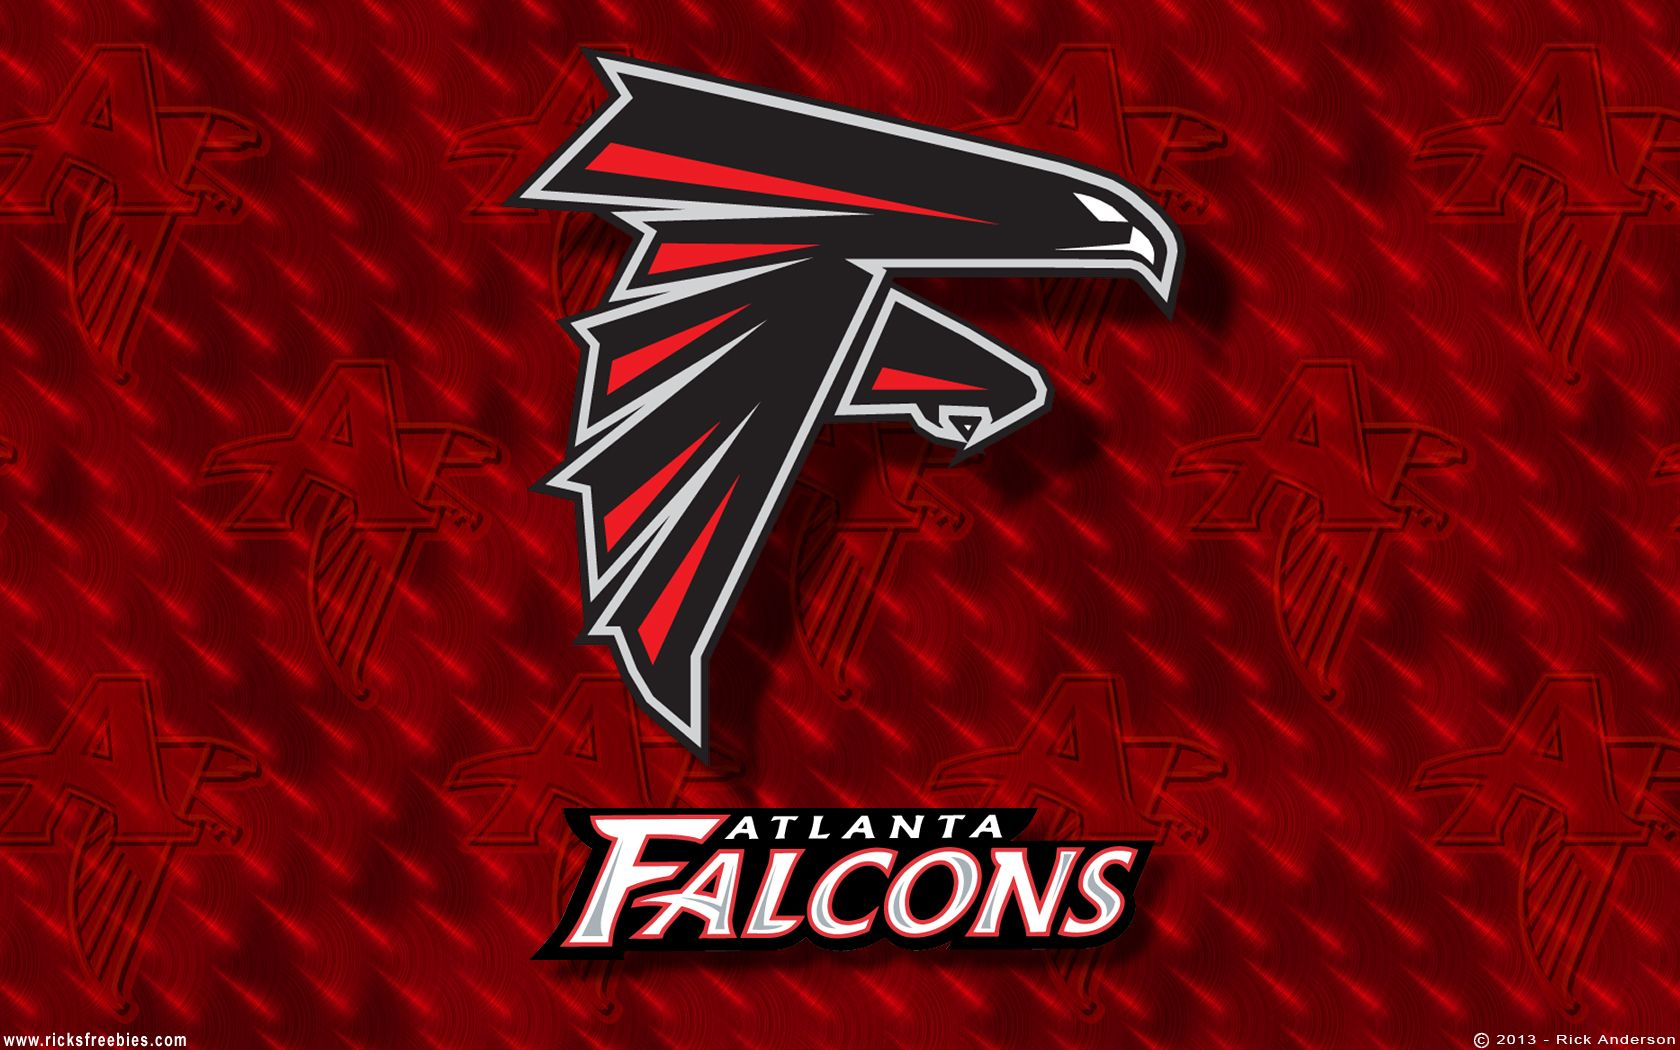 Rick S Freebies Atlanta Falcons Wallpaper 1680x1050 Atlanta Falcons Wallpaper Atlanta Falcons Logo Atlanta Falcons Football